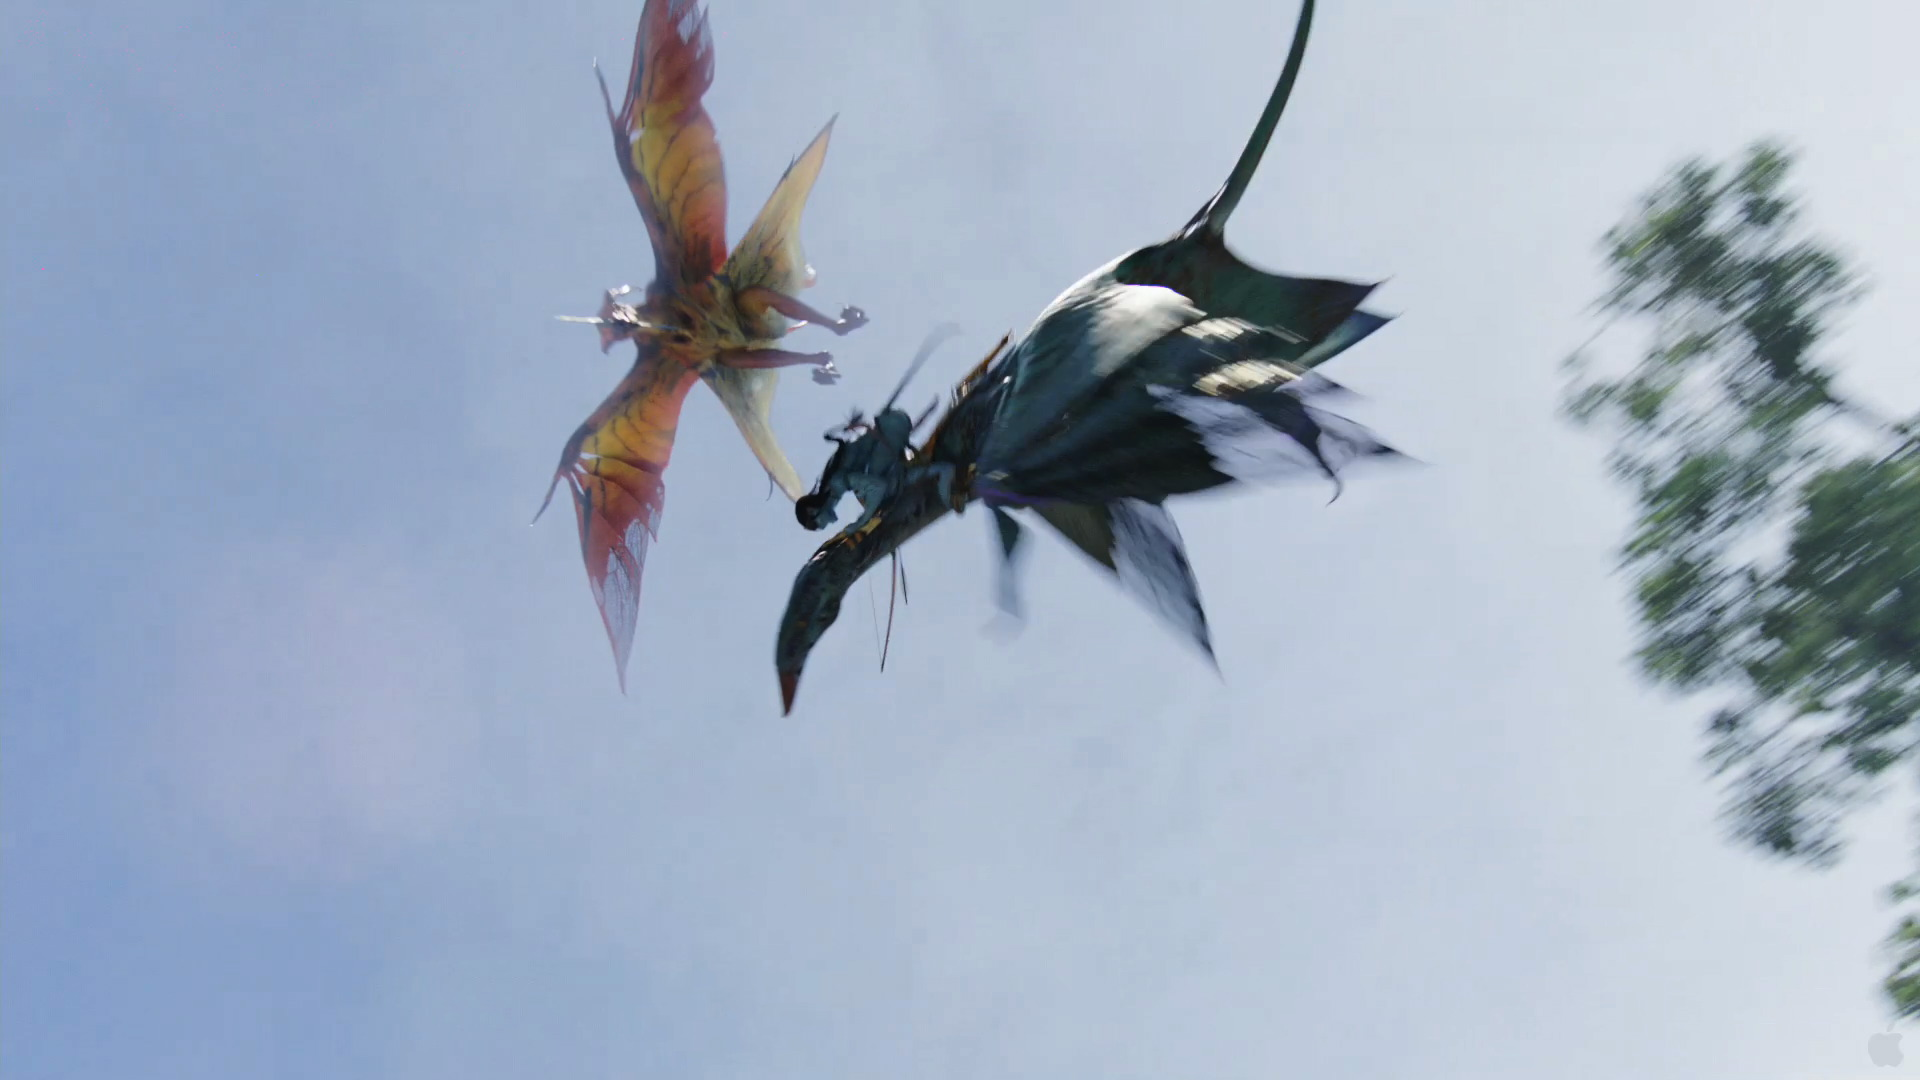 Great leonopteryx attack from avatar wallpaper - click picture for